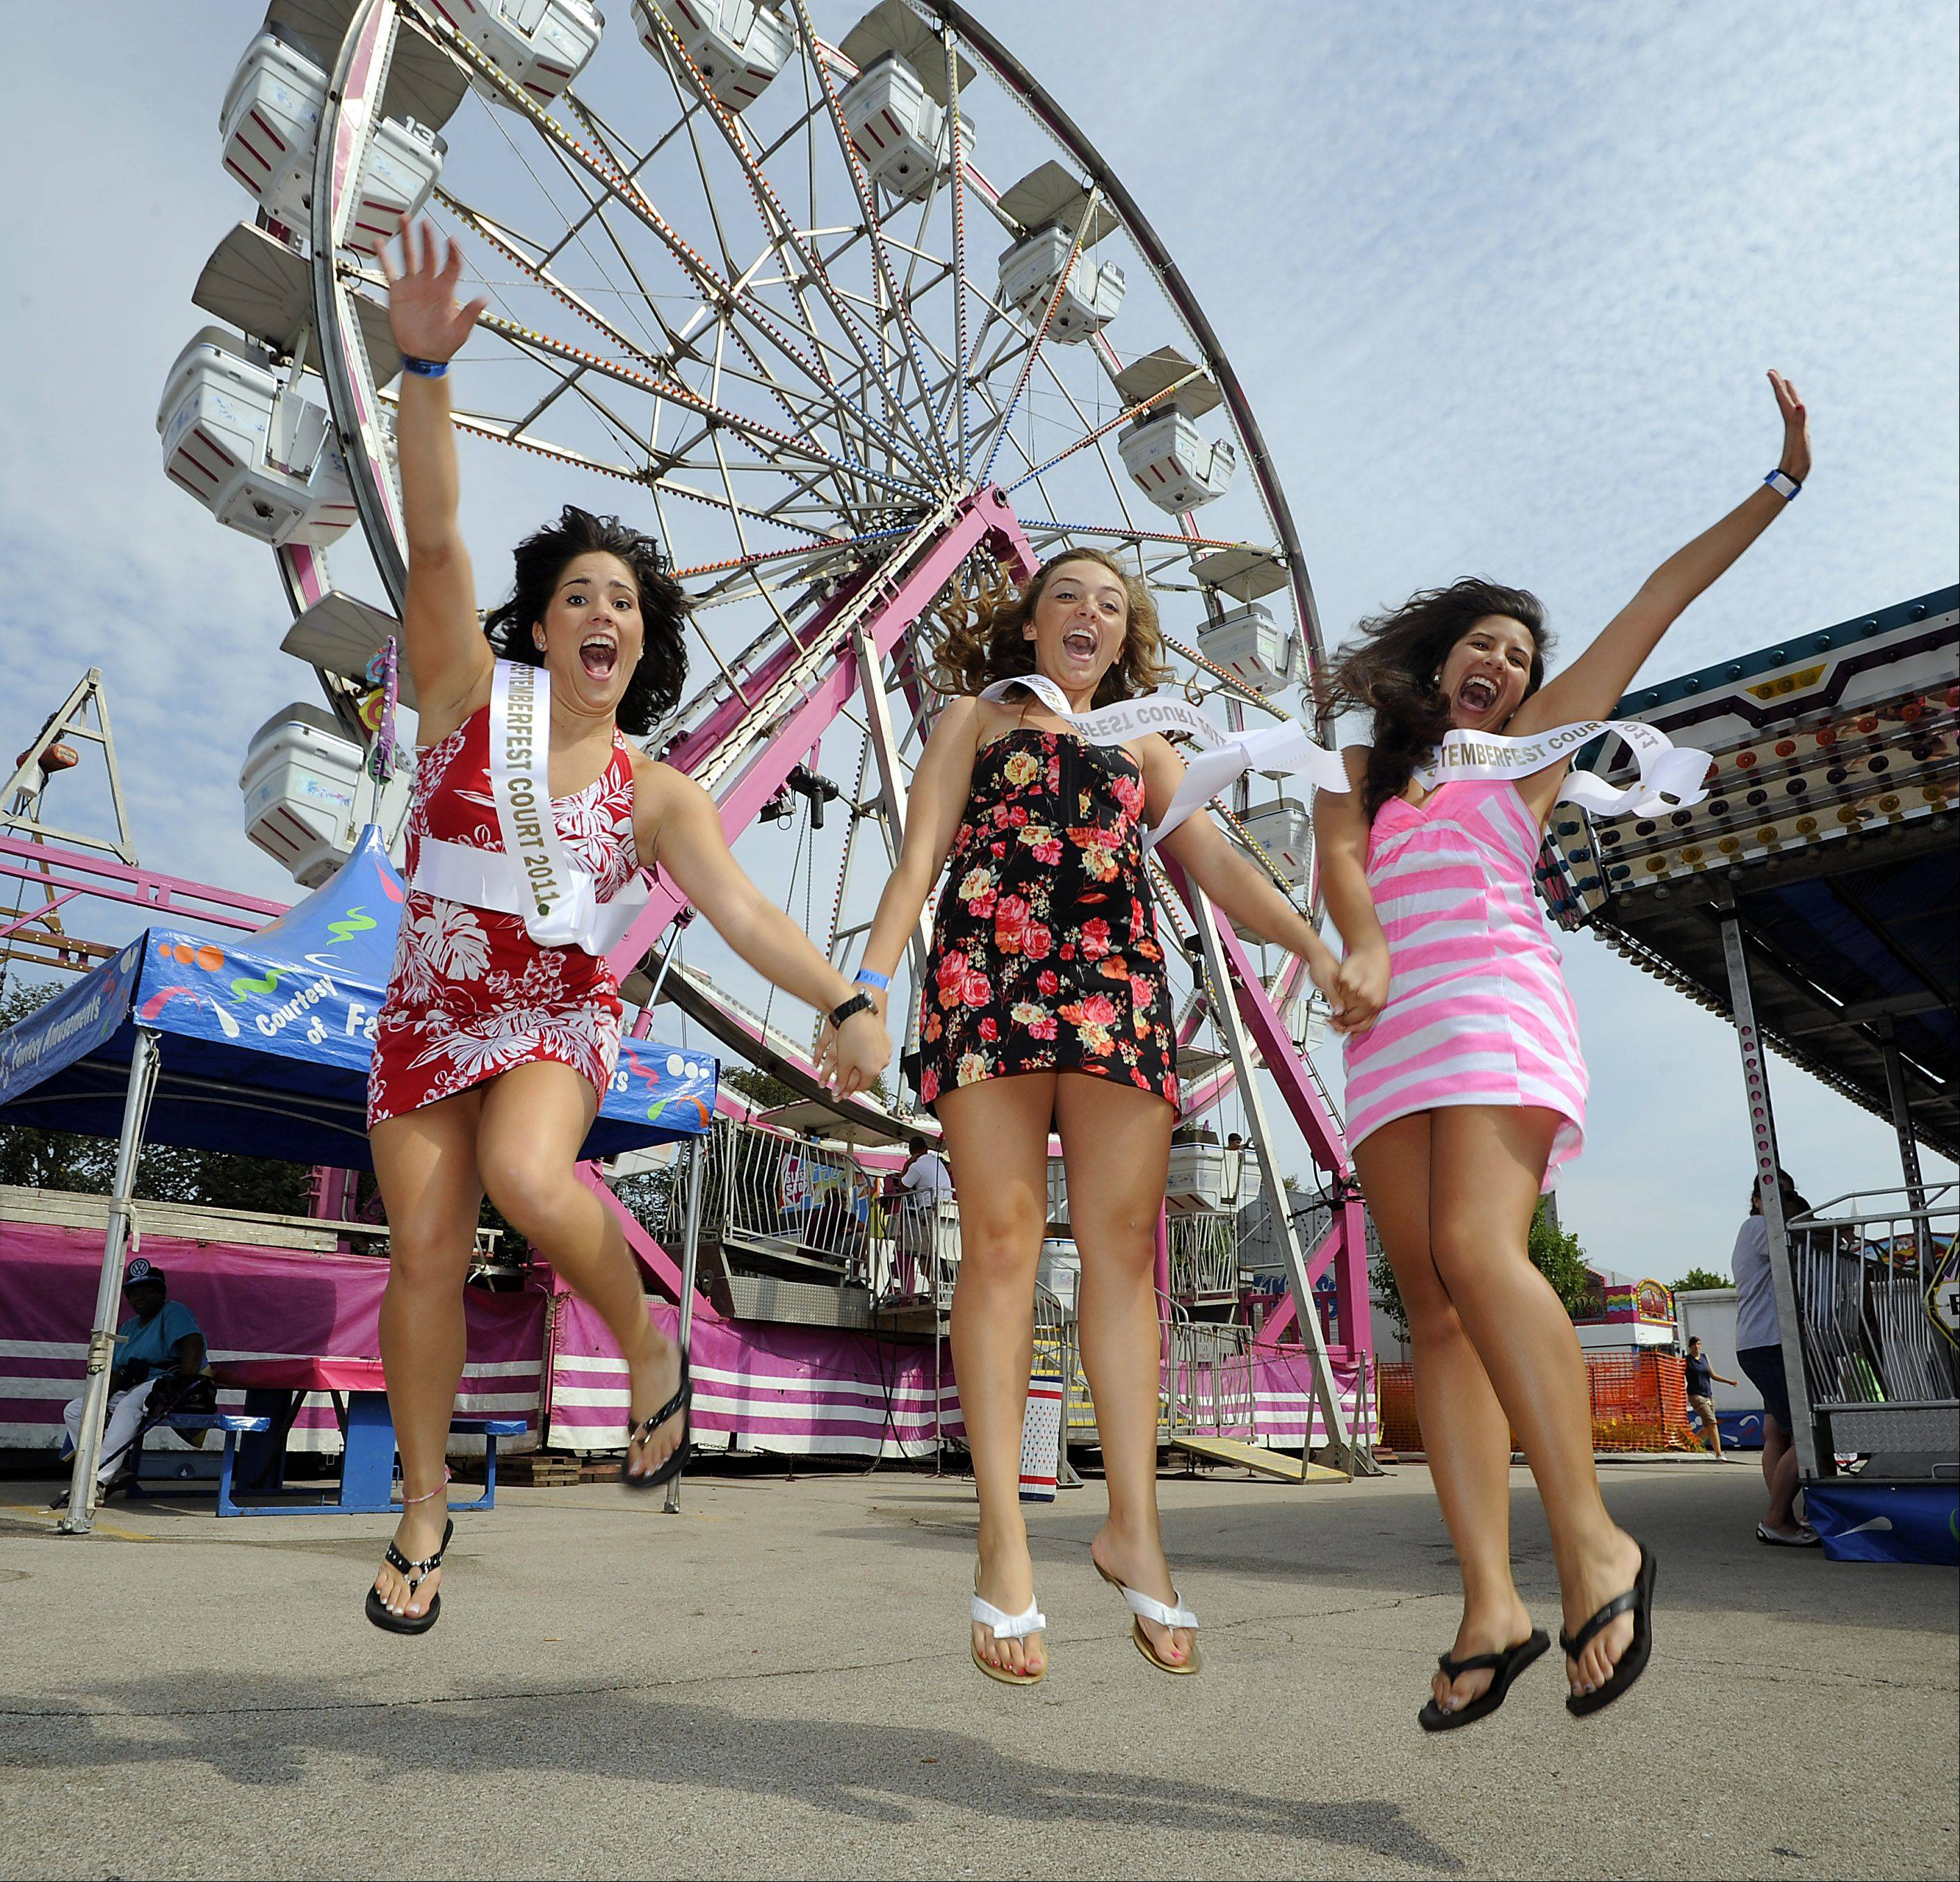 Michelle Klages, 17, Jackie Keegan, 17, and Natalie Chakeves, 19 — members of the Miss Septemberfest court — jump with excitement on the first day of the three-day event Saturday. Although officials are still awaiting final attendance figures, preliminary results had them on Tuesday declaring the fest an unqualified success.